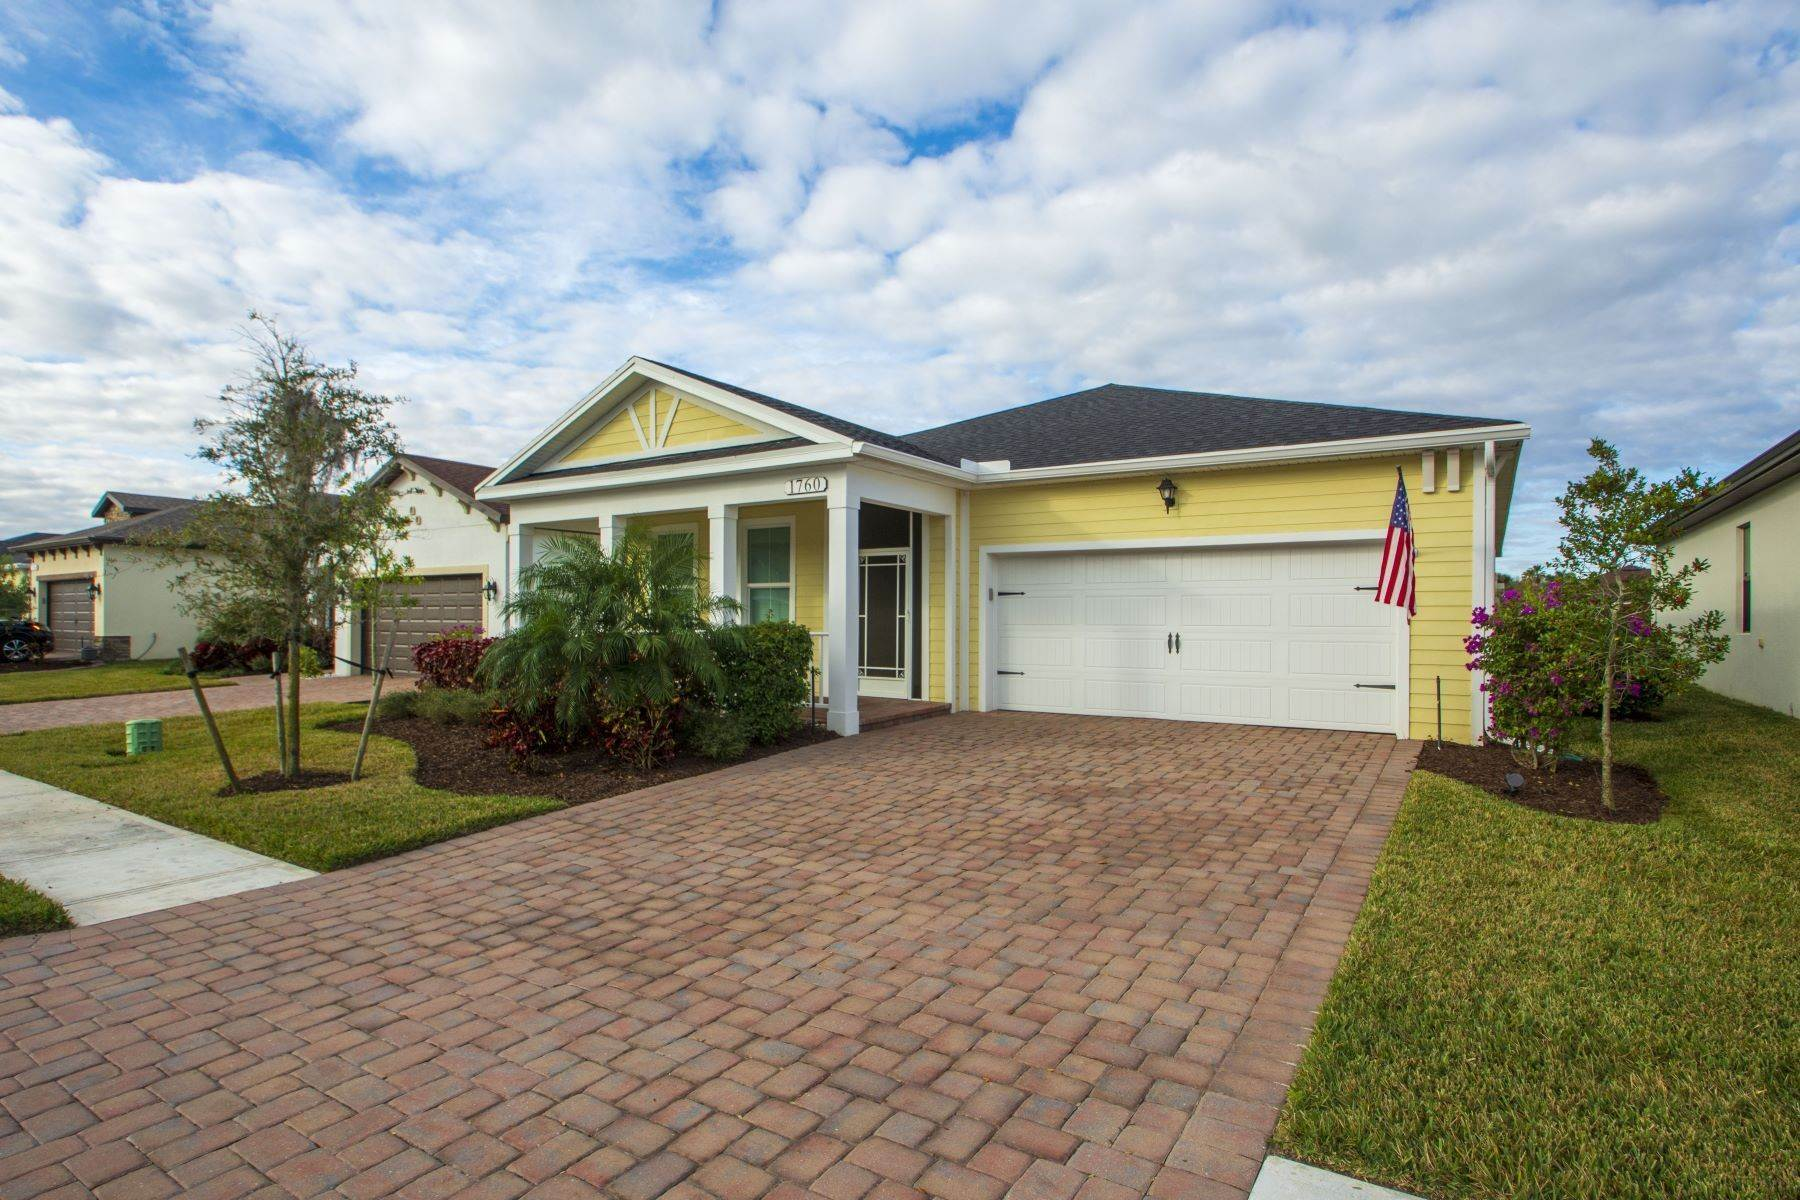 3. Single Family Homes for Sale at 1760 Willows Square, Vero Beach, FL 1760 Willows Square Vero Beach, Florida 32966 United States